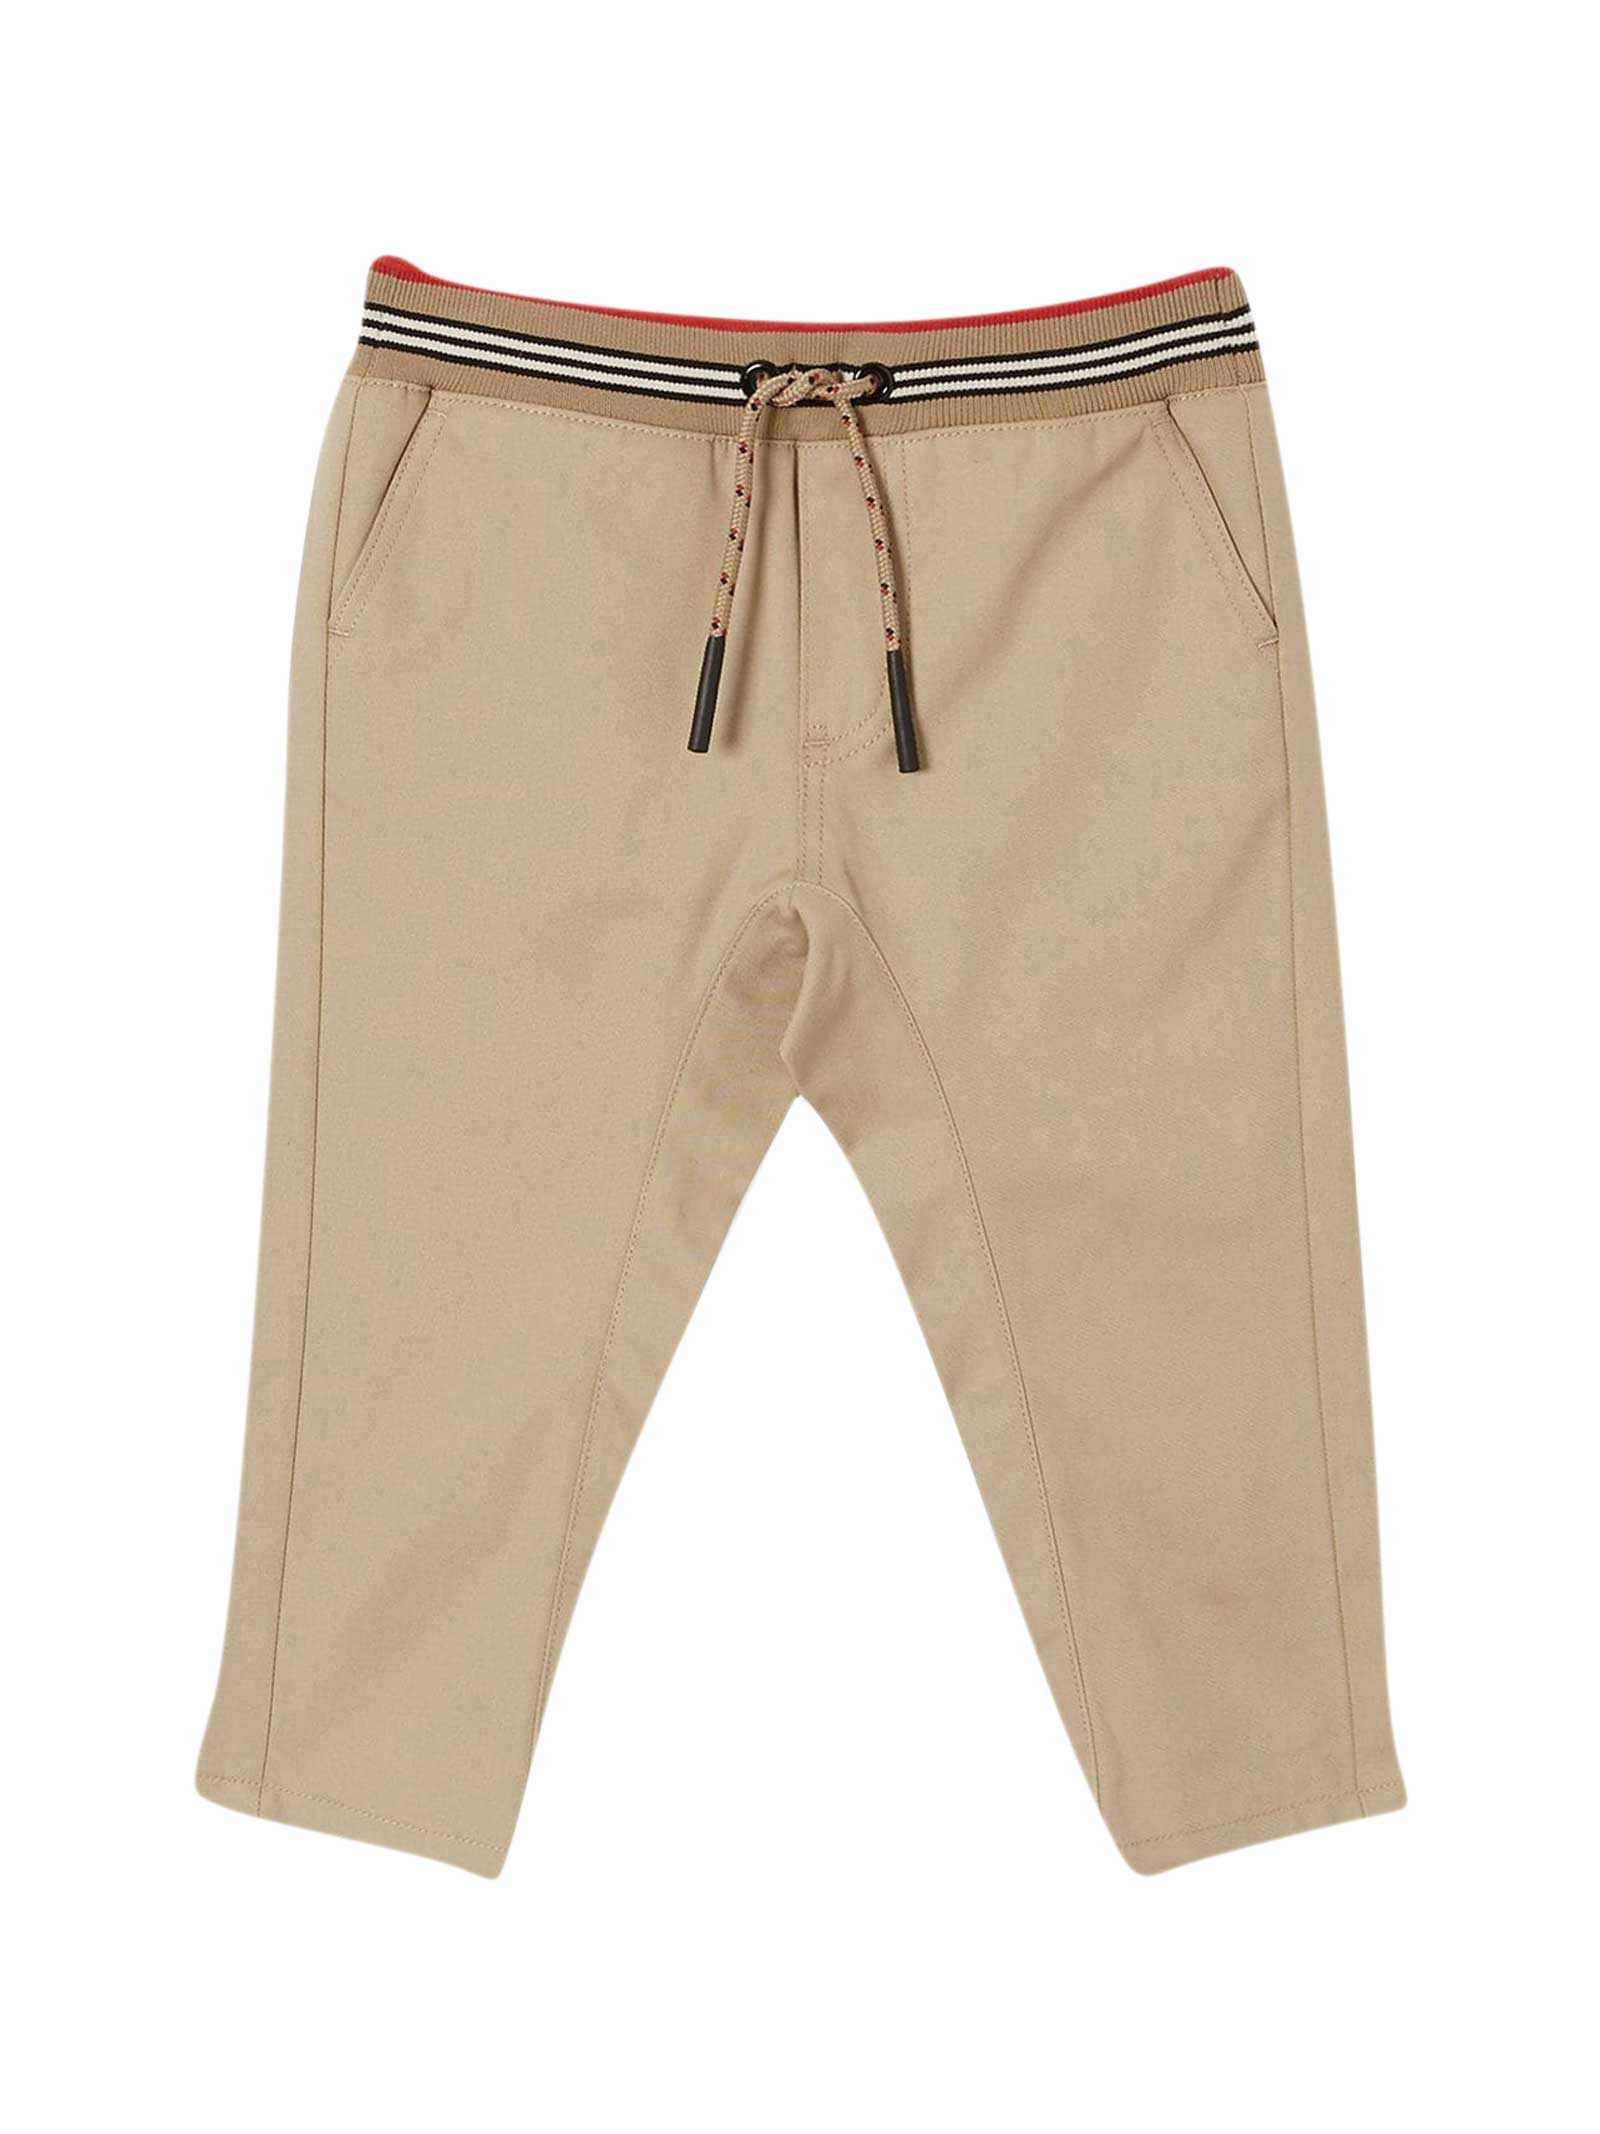 Burberry Babies' Beige Trousers In Sabbia